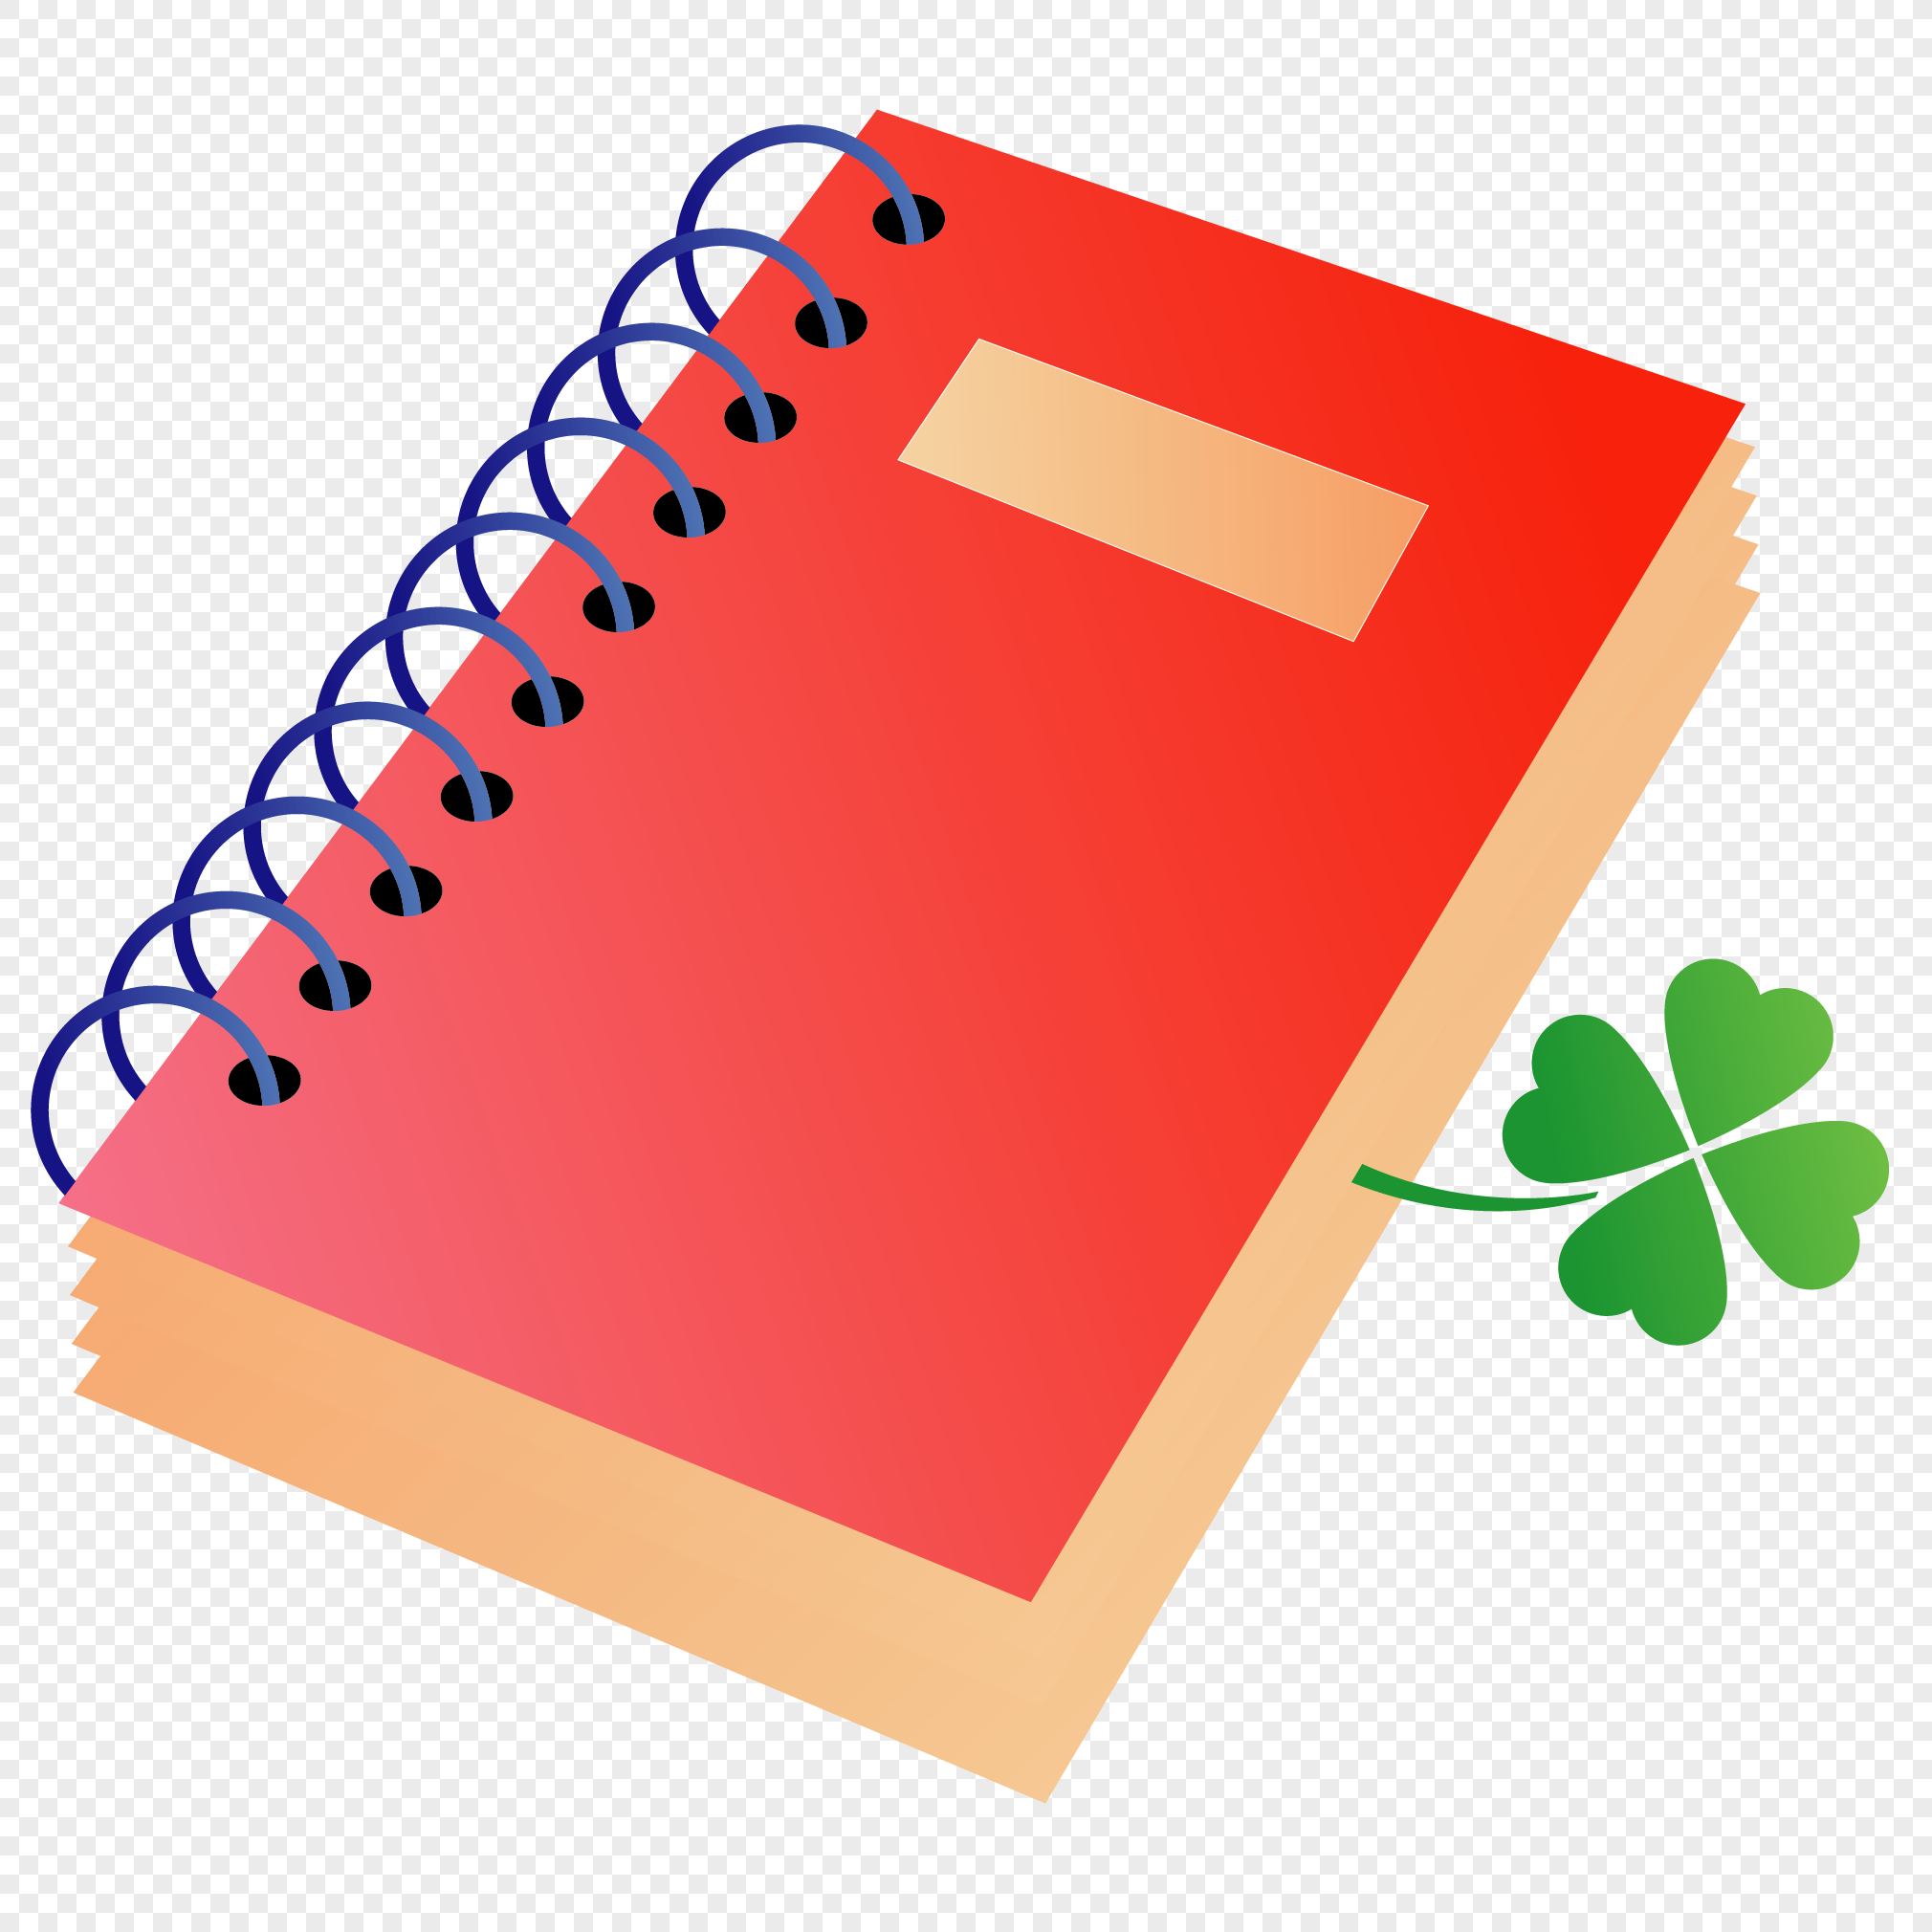 Red notebook png image_picture free download 400584247_lovepik. Com.